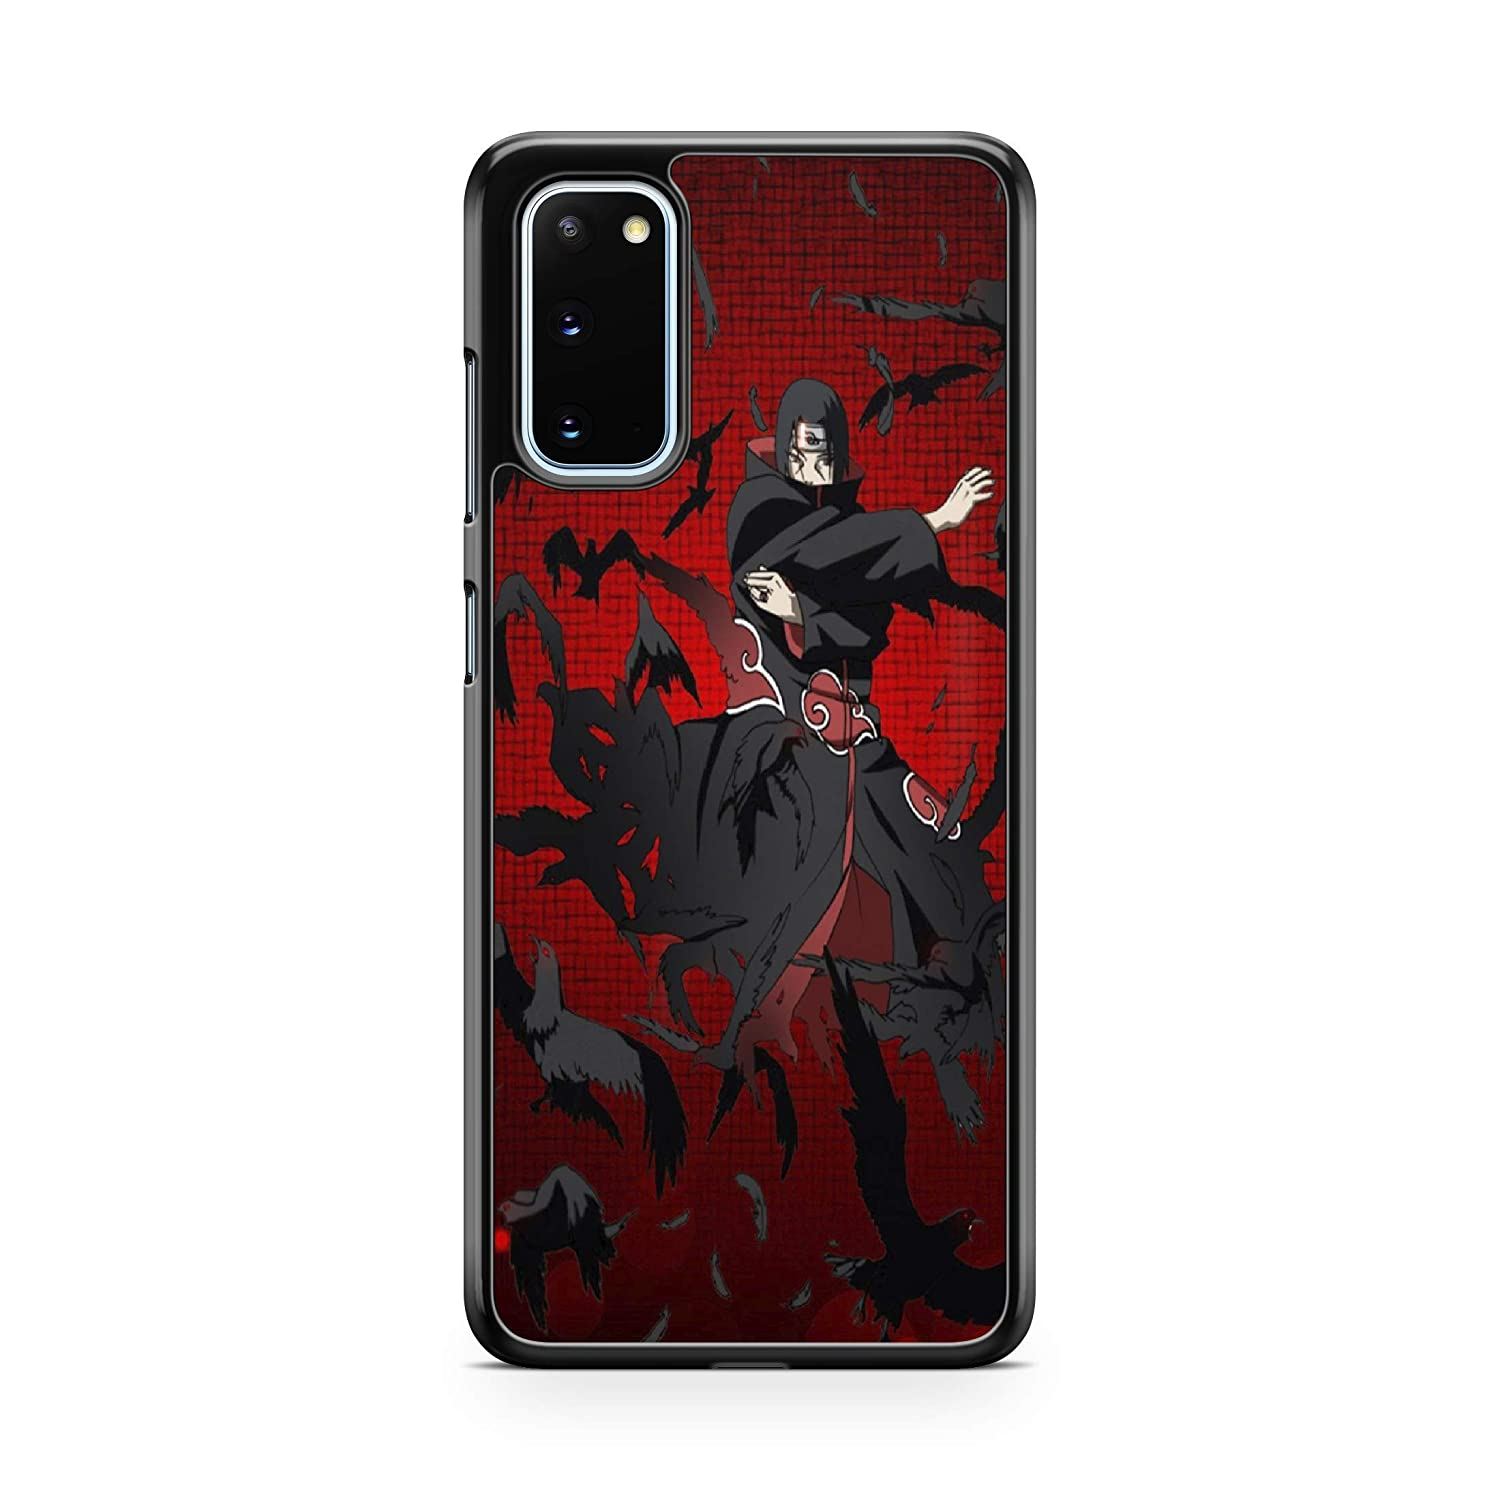 Japanese Anime 5% OFF Crow Theme Ranking TOP14 Case for A70 Samsung A71 A51 Galaxy 5G